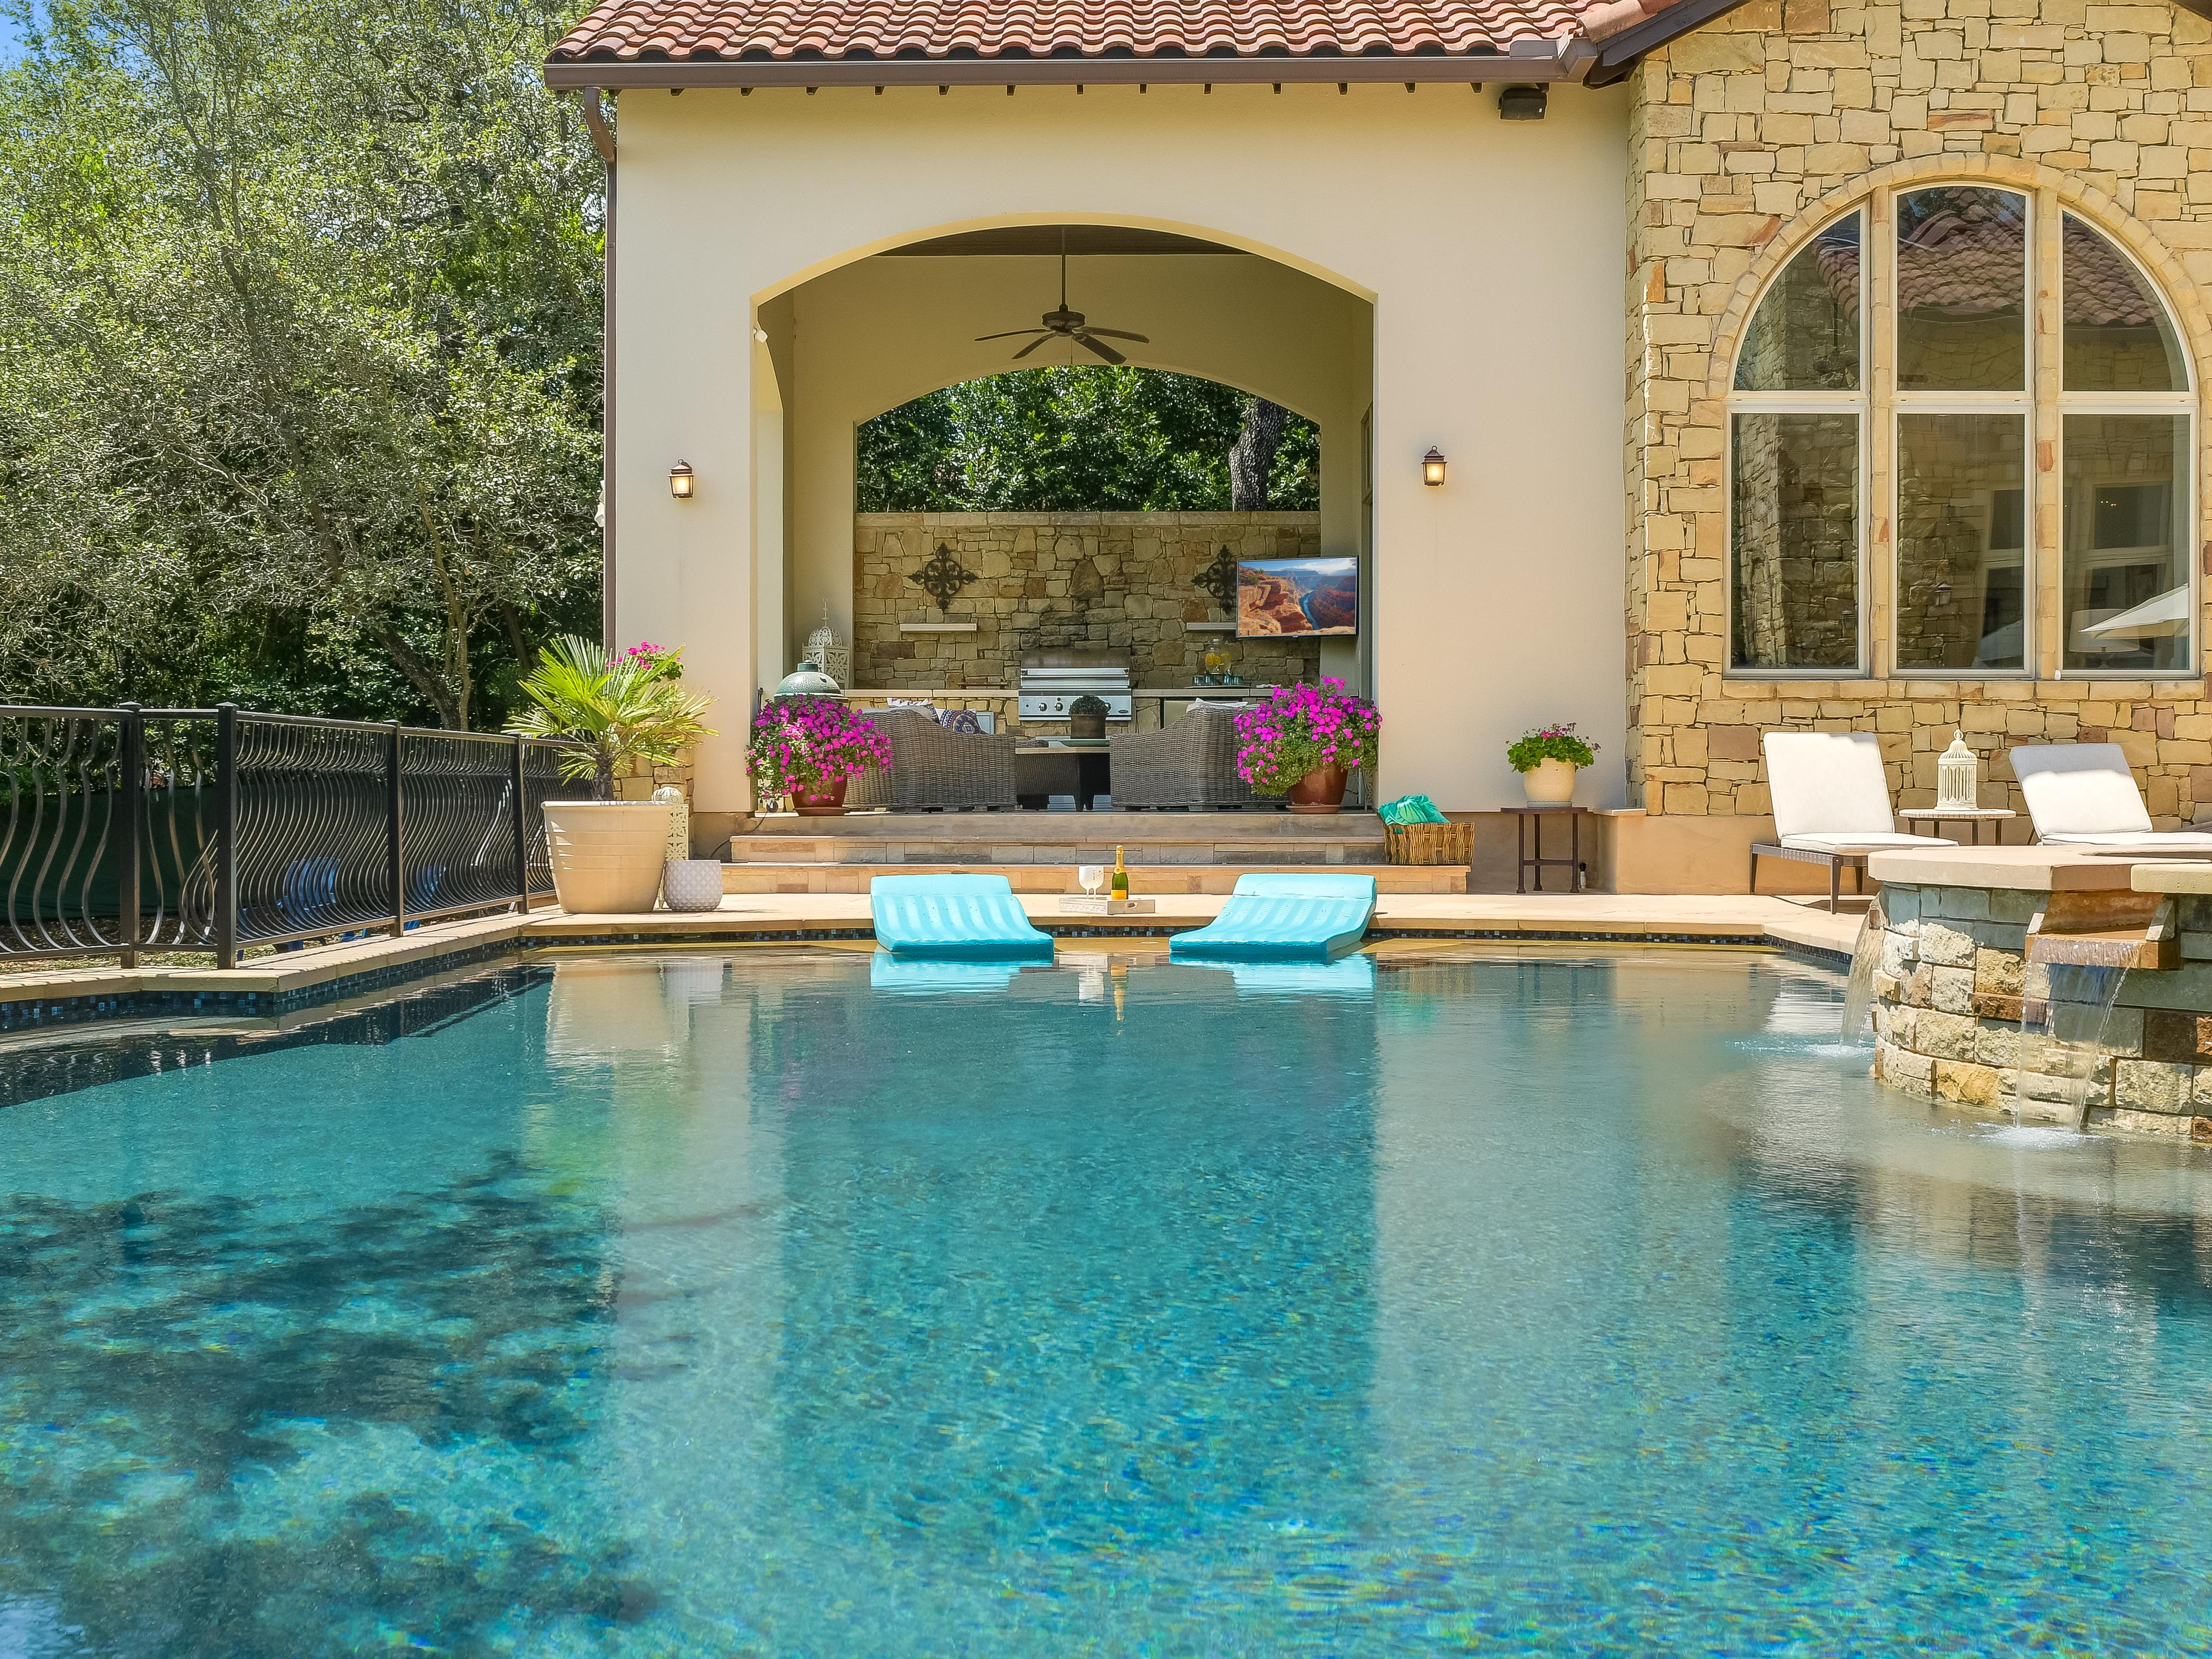 Pool & Outdoor Kitchen